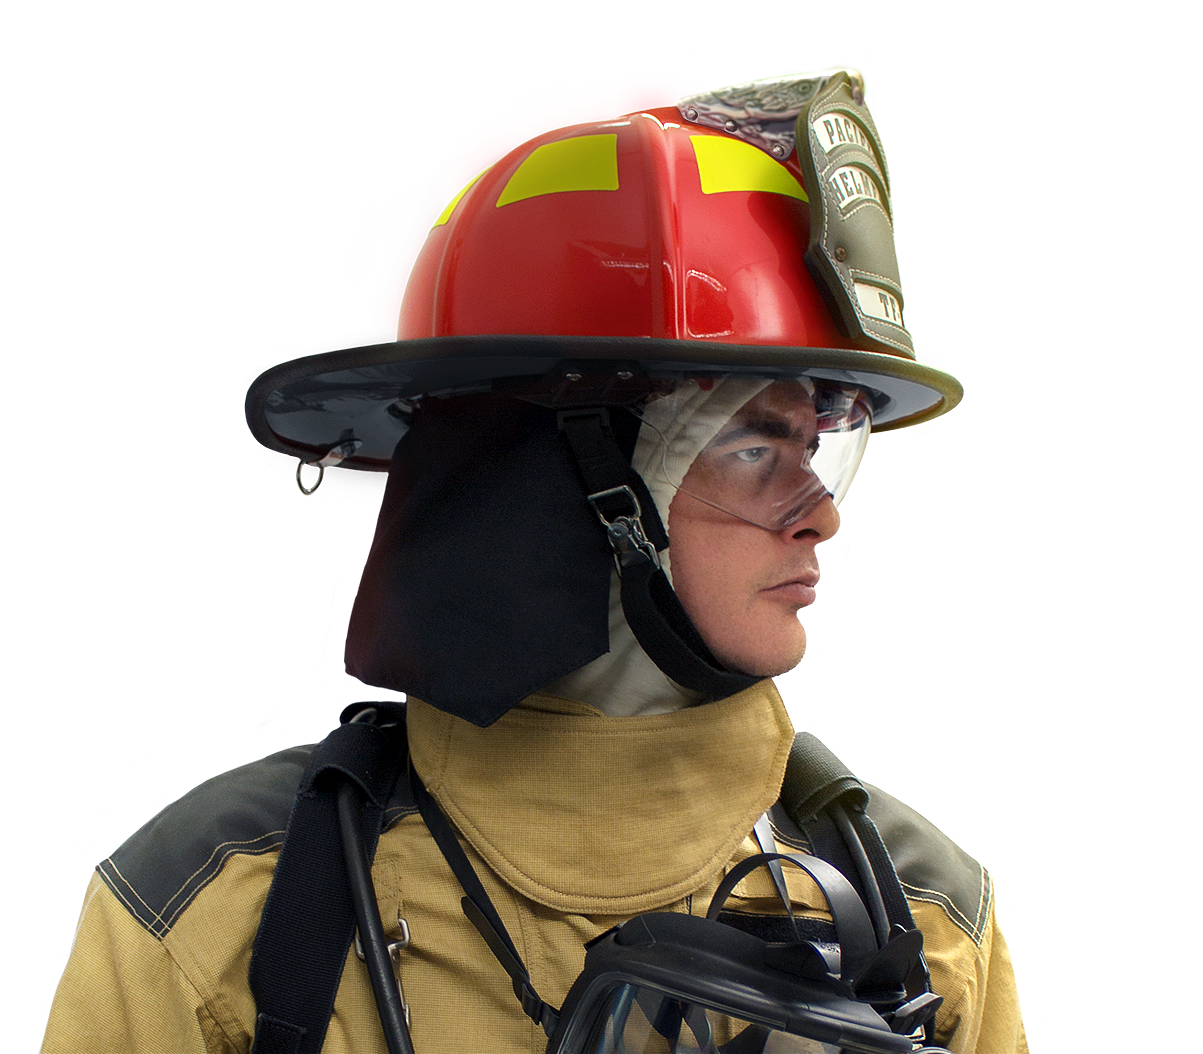 Pacific_Helmets_F18_2.png